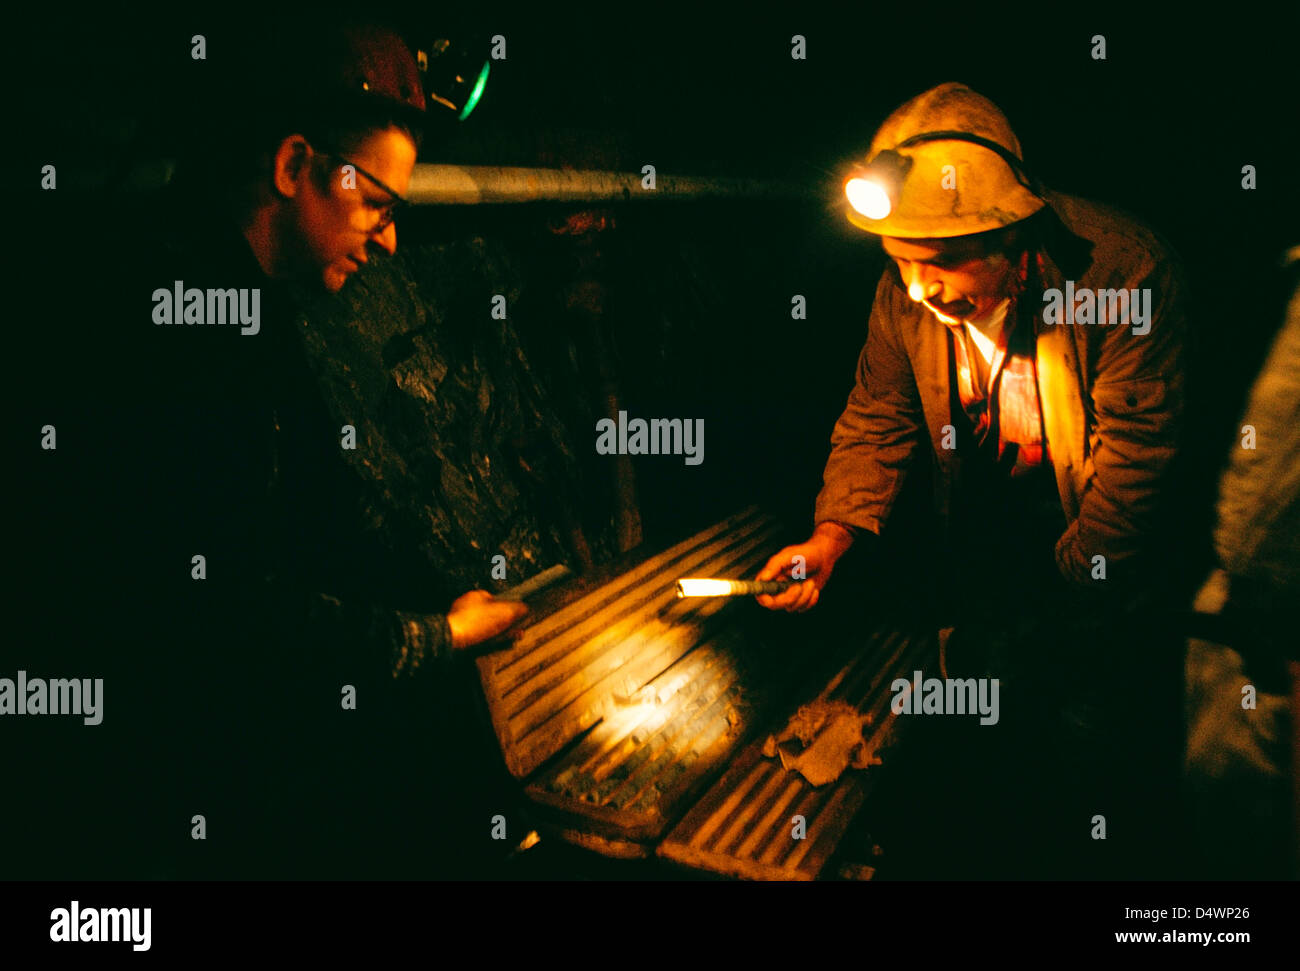 Two men inspecting core samples in the Red Lake Mine in Northern Ontario;Ontario;Canada - Stock Image